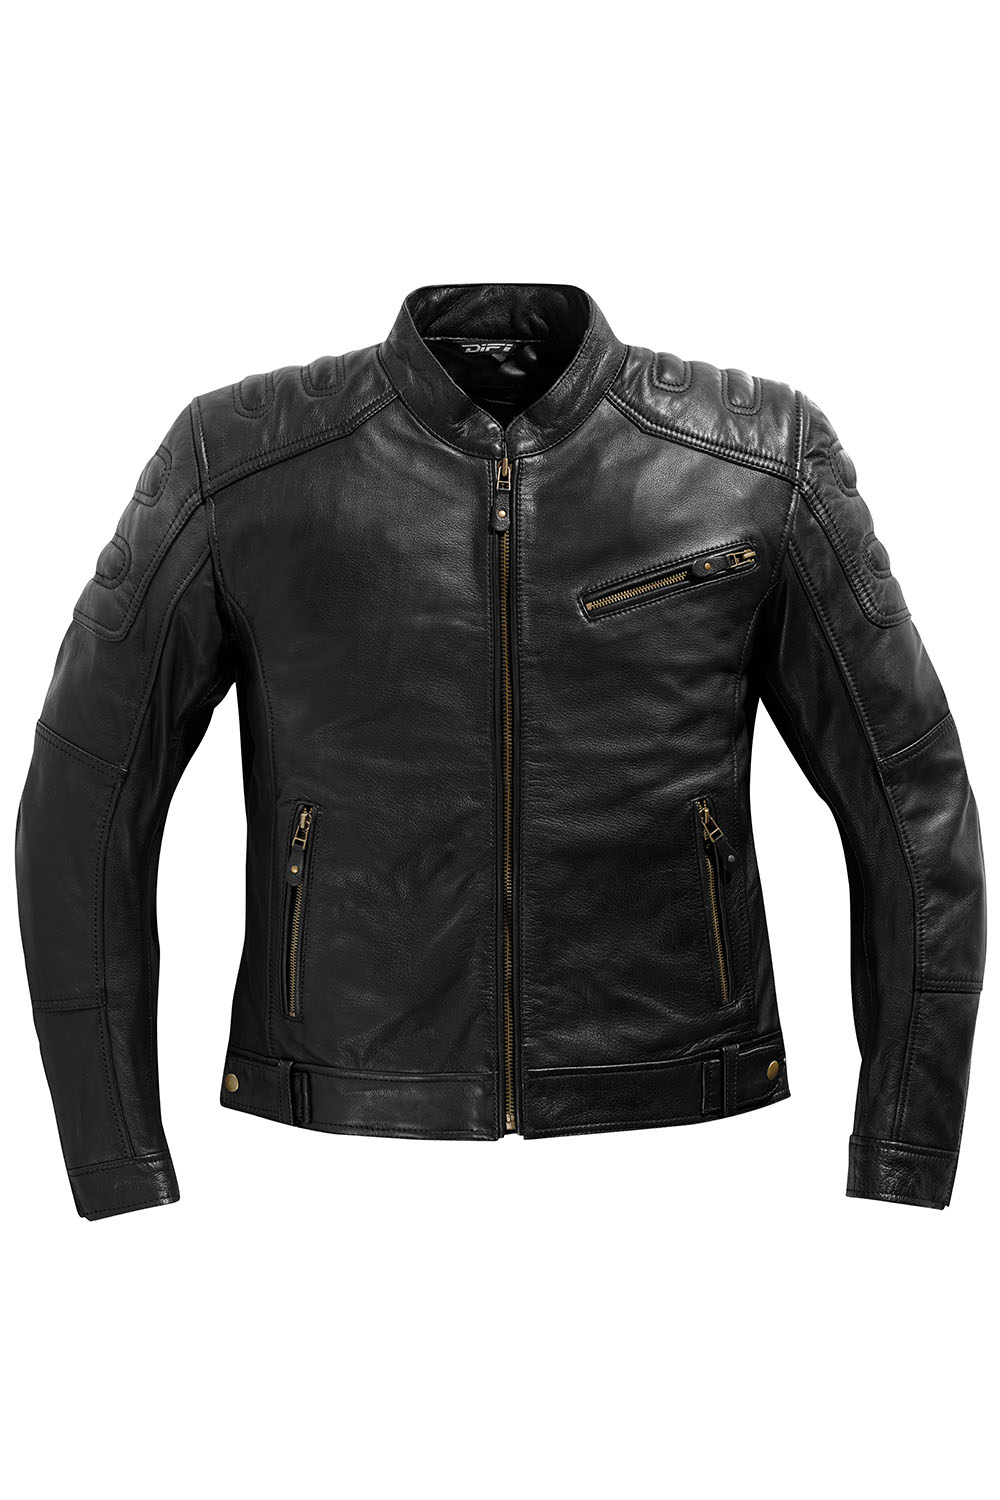 difi bonneville leder motorradjacke im motoport onlineshop. Black Bedroom Furniture Sets. Home Design Ideas